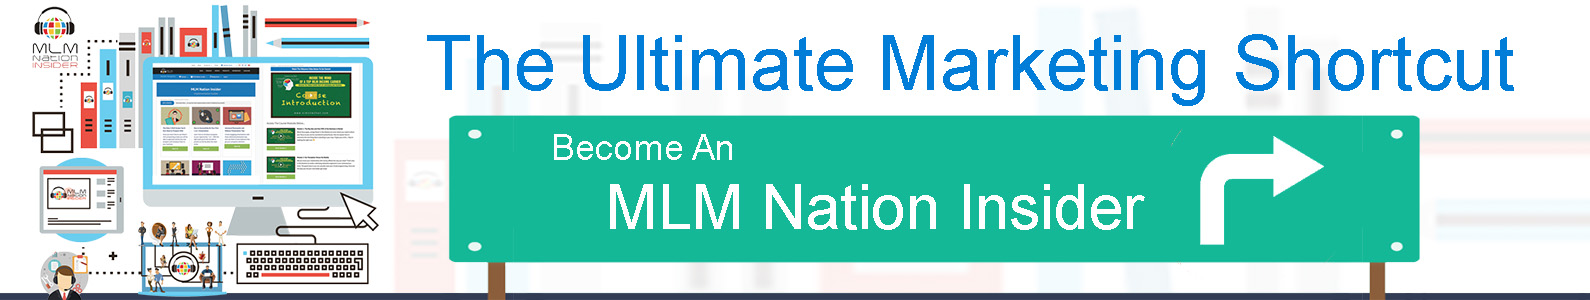 Become an MLM Nation Insider today